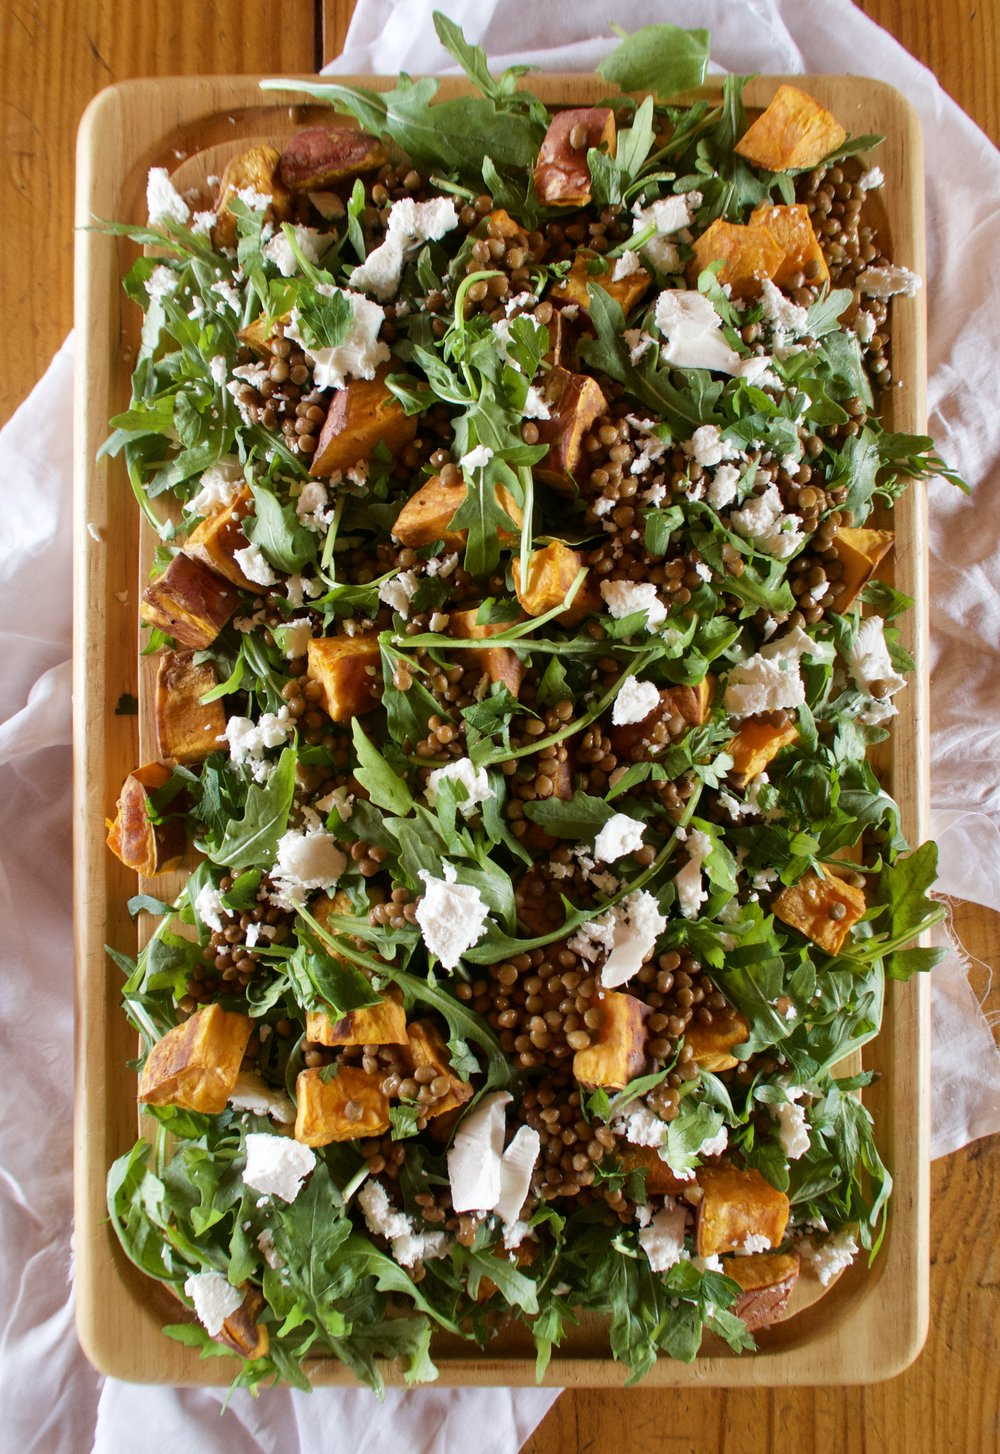 Sweet potato, lentil and feta salad